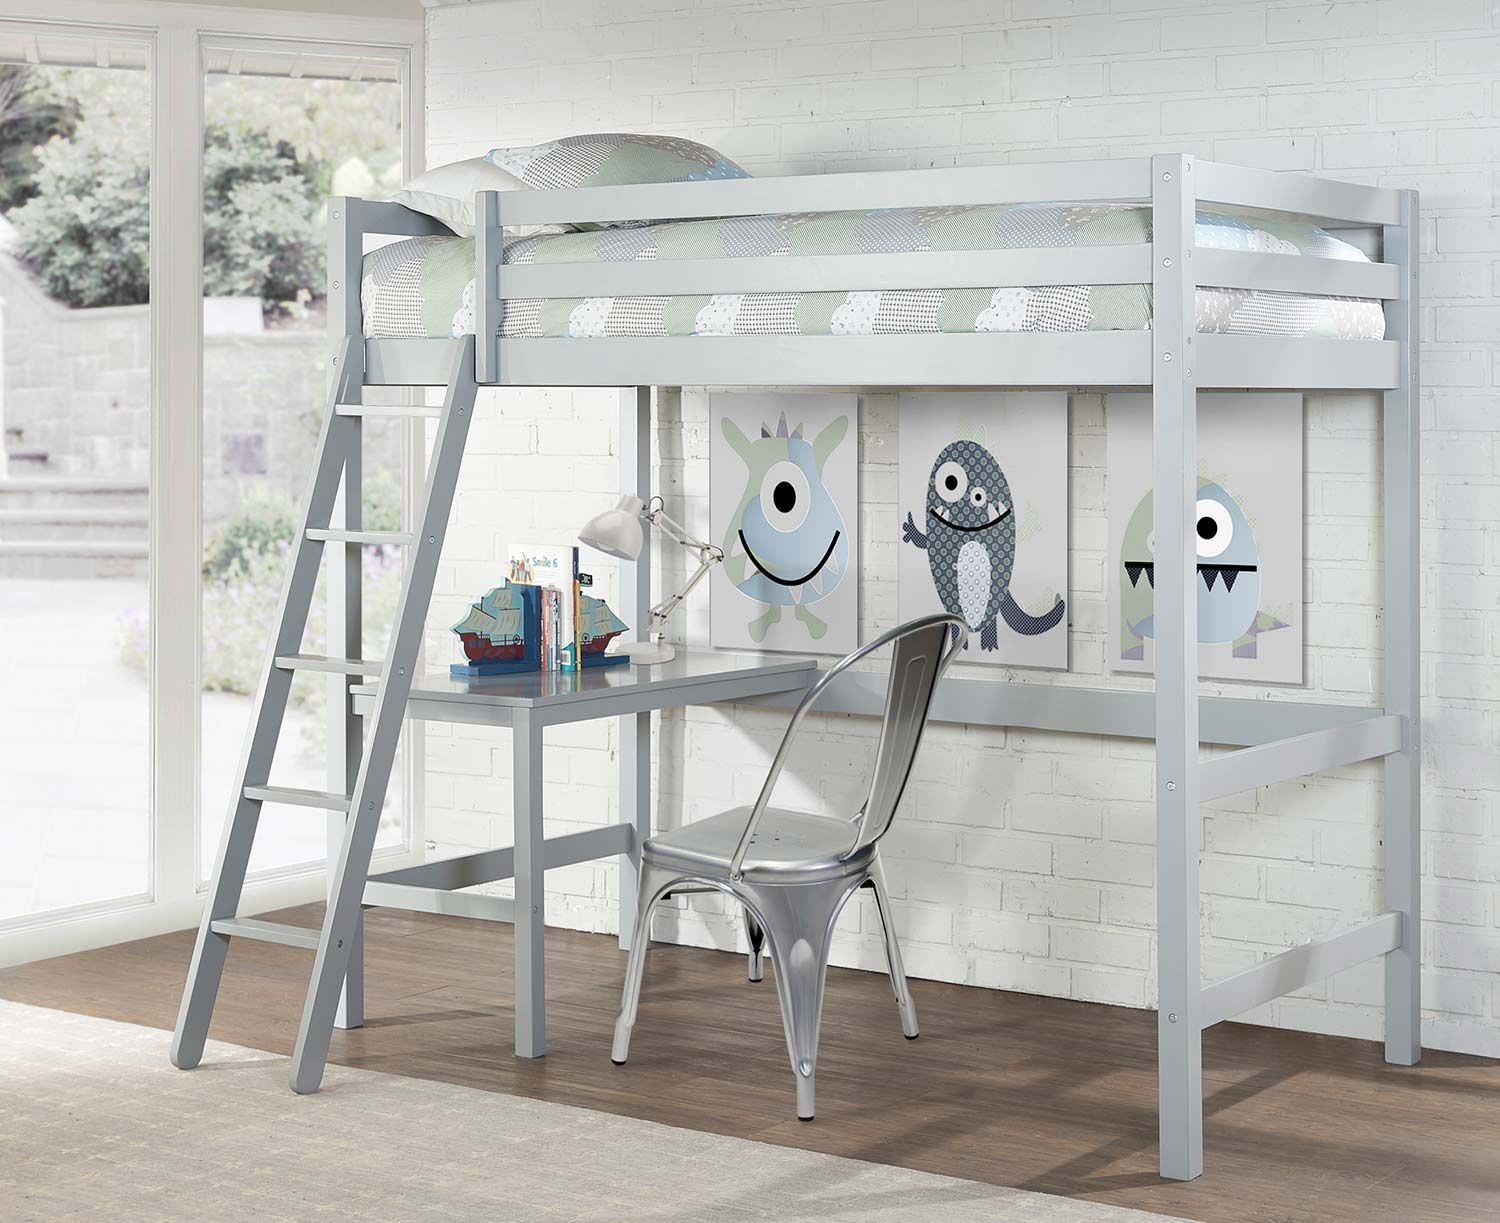 Hillsdale Caspian Twin Study Loft Bed With Chair - Gray